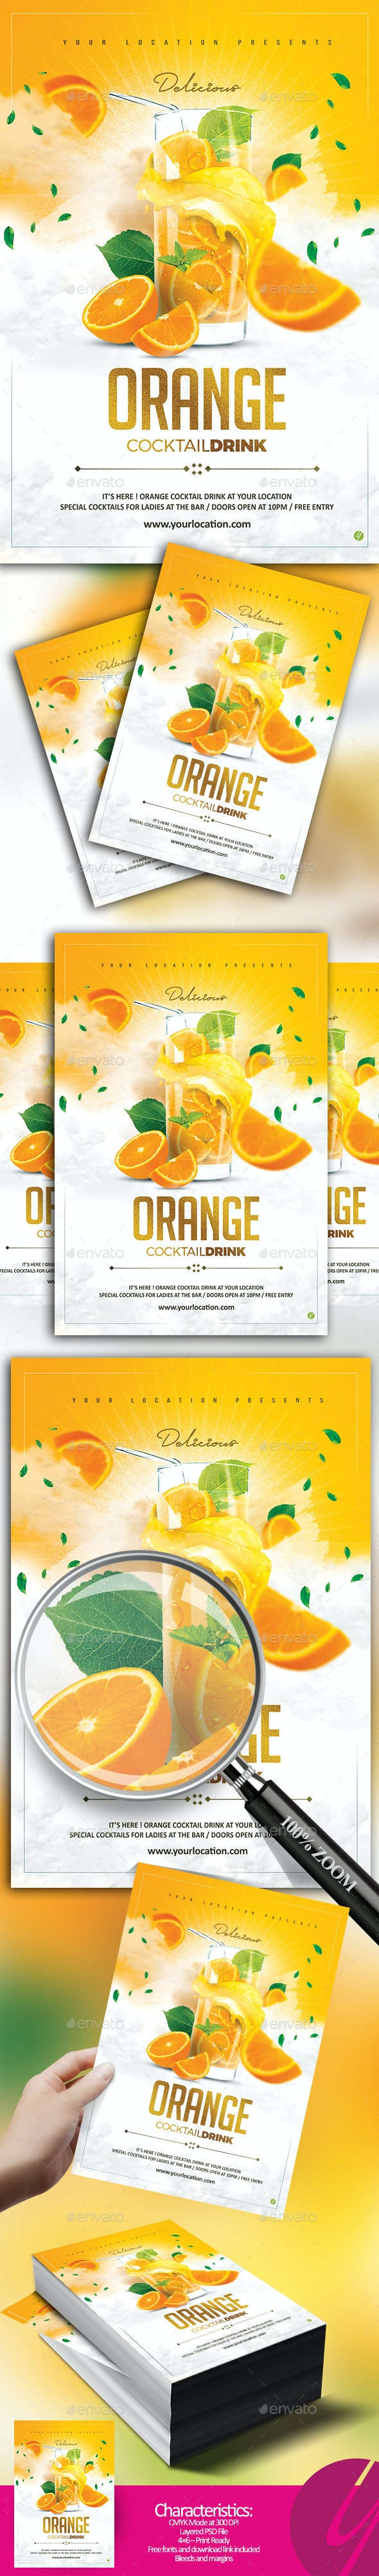 Orange Cocktail Drink - Clubs & Parties Events